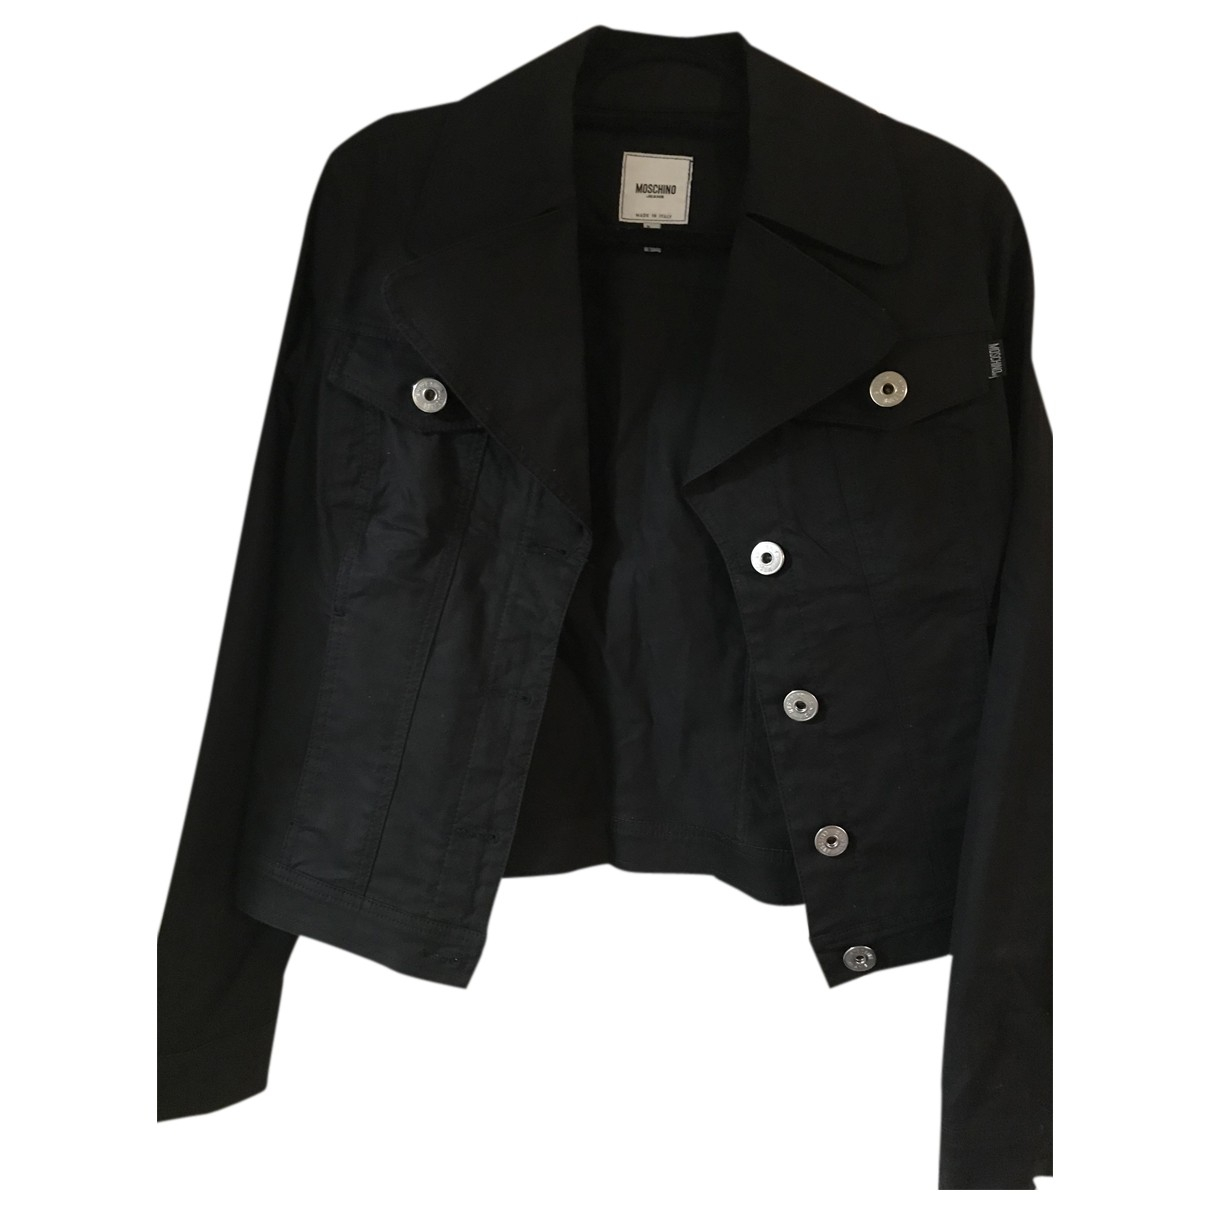 Moschino N Black Cotton jacket for Women 46 IT